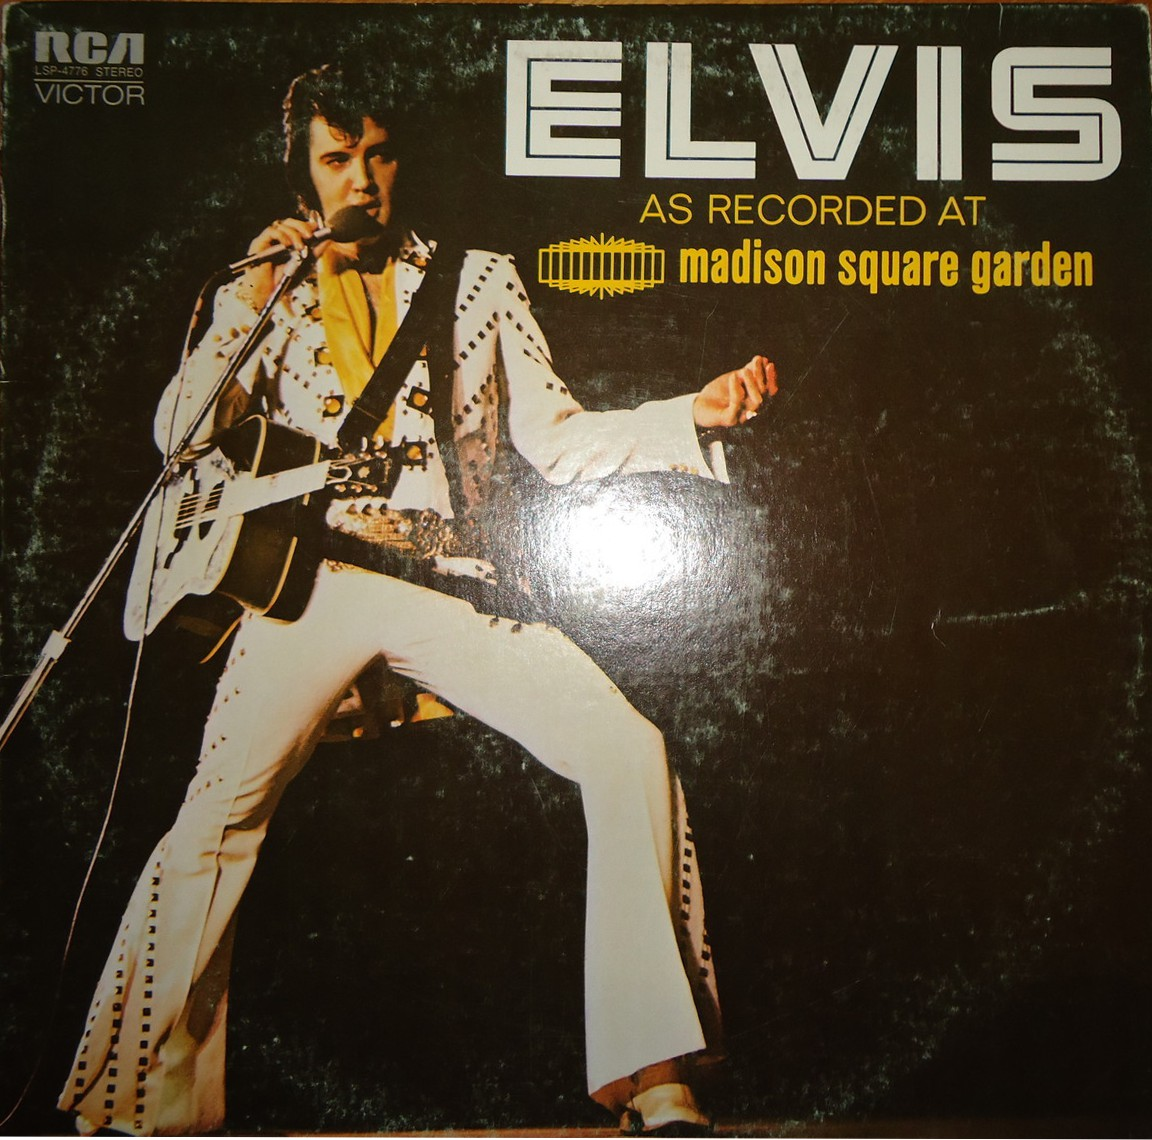 ELVIS AS RECORDED AT MADISON SQUARE GARDEN Lsp4776gcqo7h